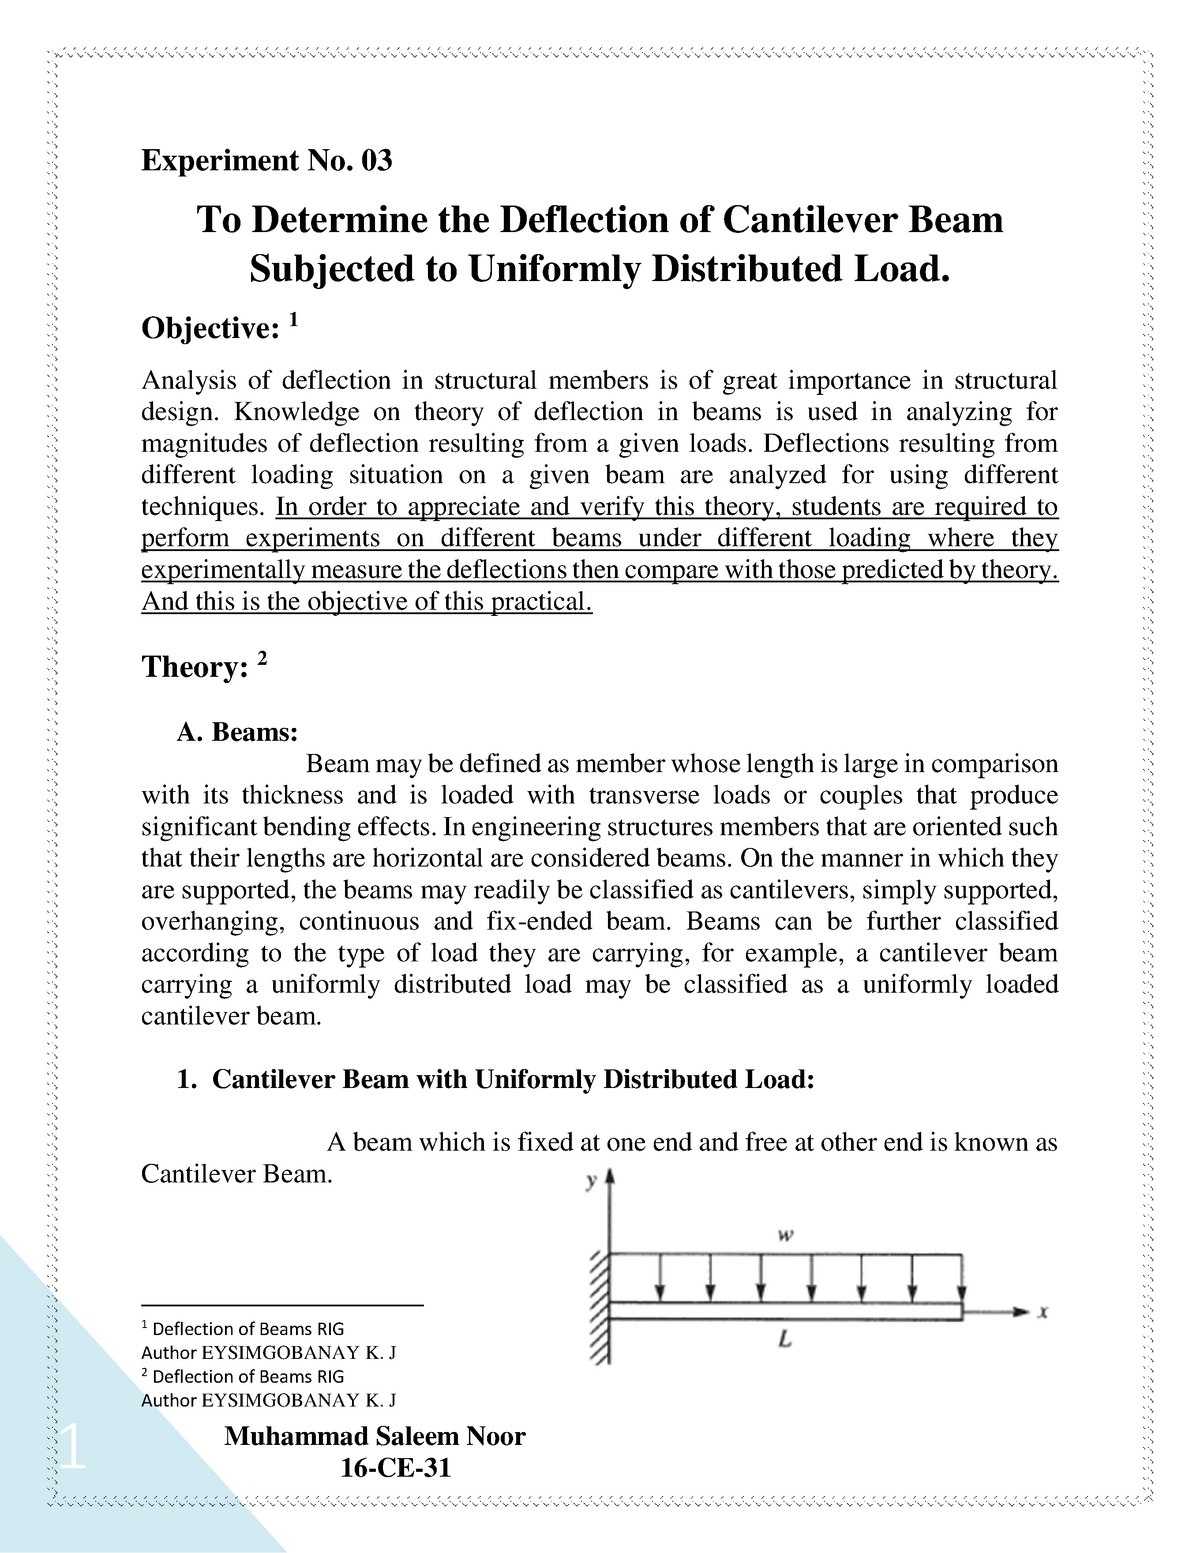 To Determine the Deflection of Cantilever Beam Subjected to